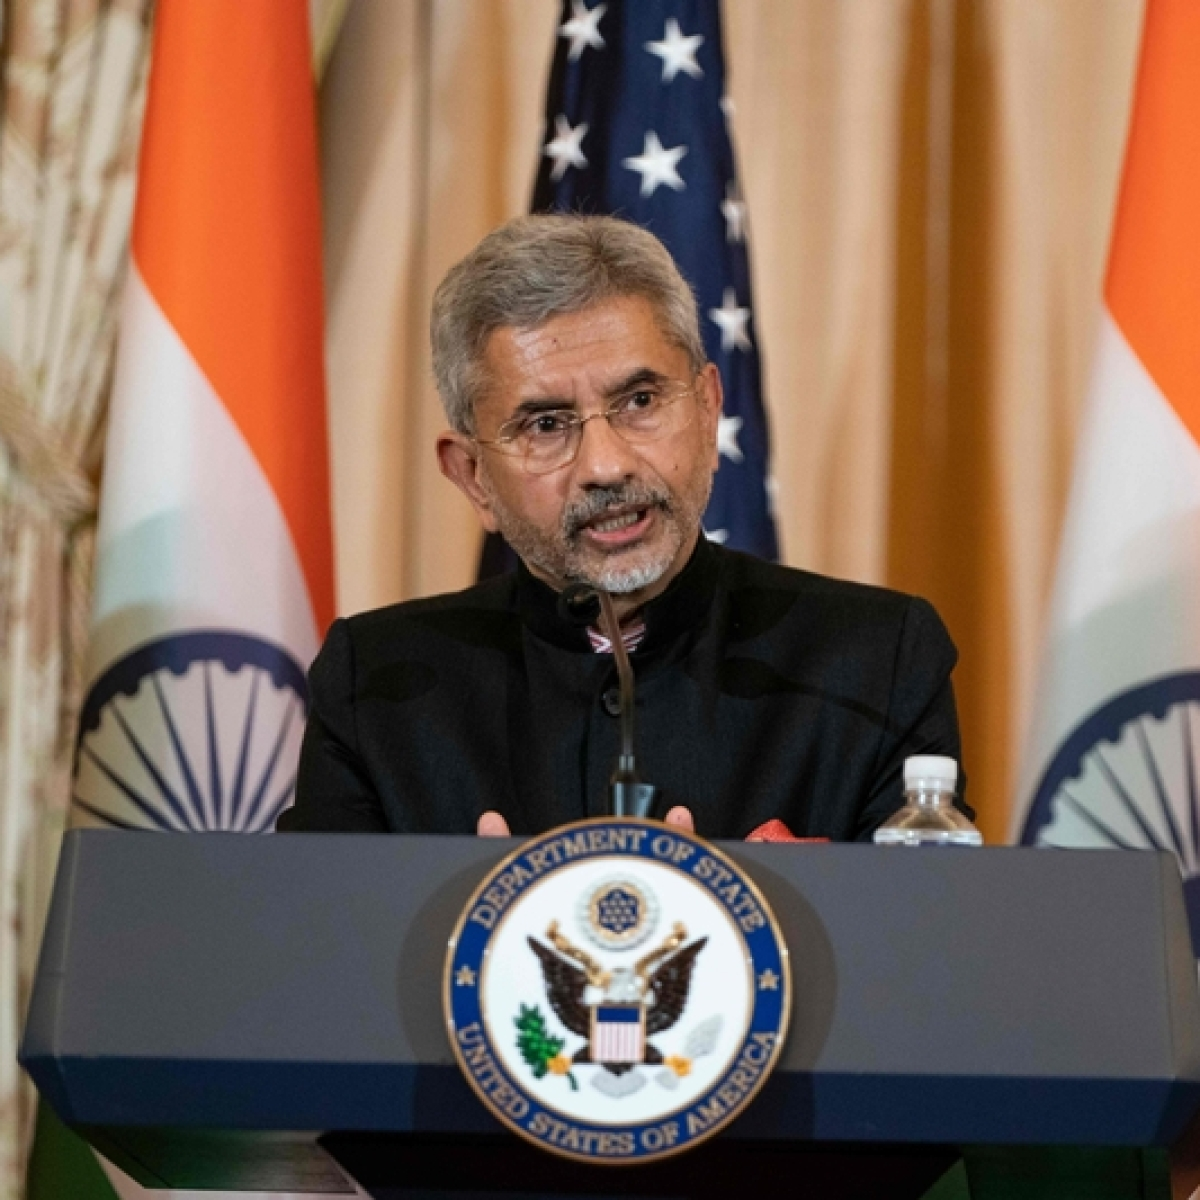 Some busy in spreading terror while world is fighting COVID-19: External Affairs Minister S Jaishankar slams Pakistan during SCO meet